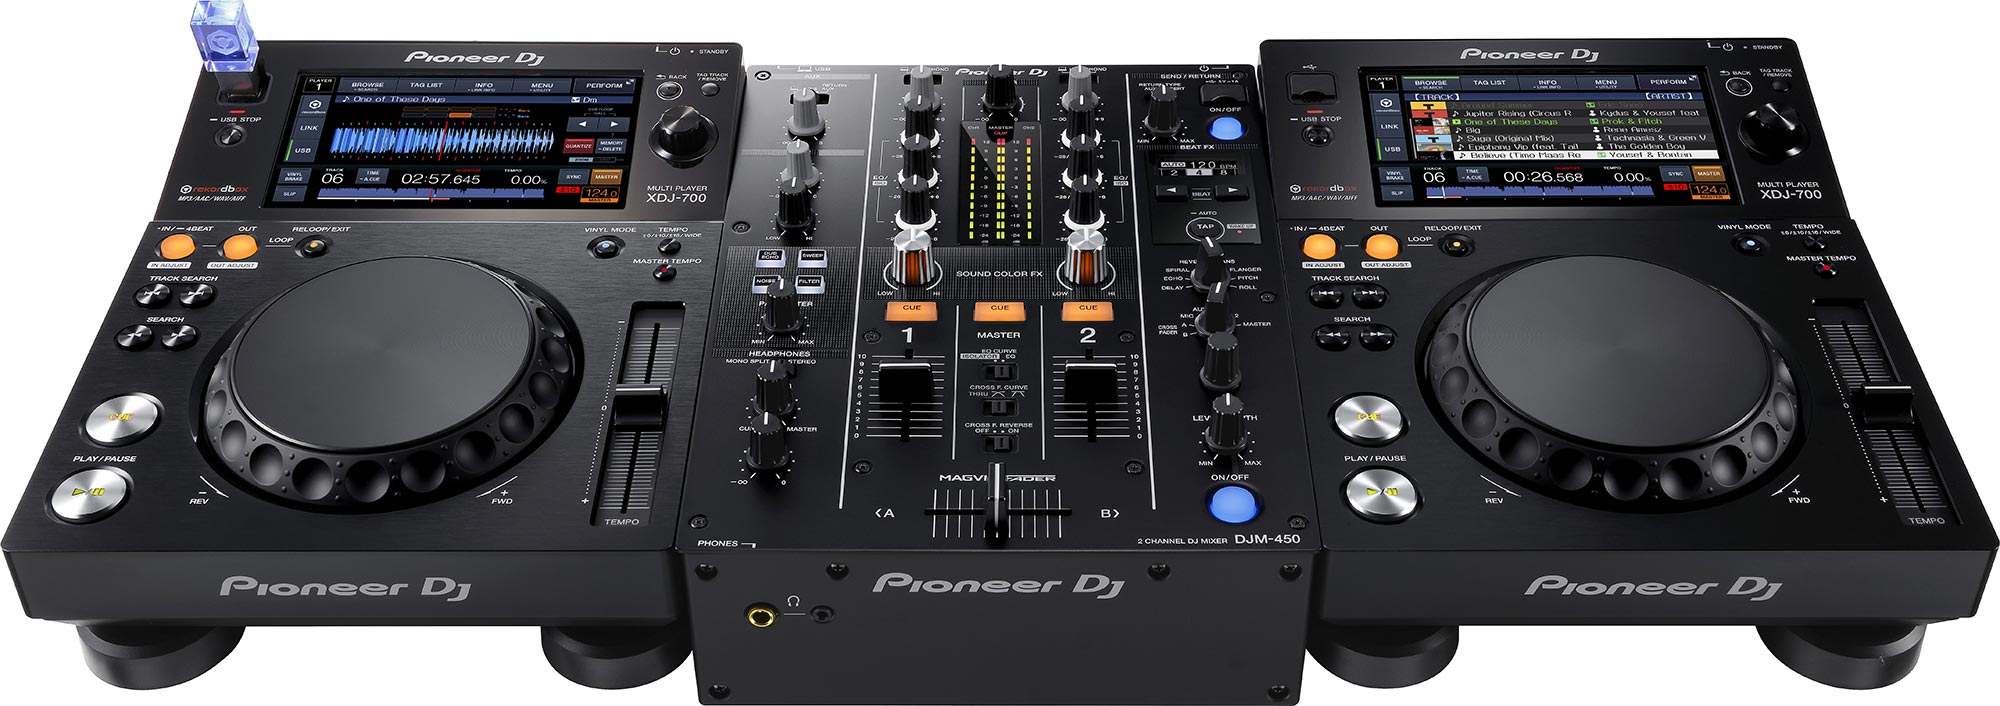 pioneer dj mixer images galleries with a bite. Black Bedroom Furniture Sets. Home Design Ideas